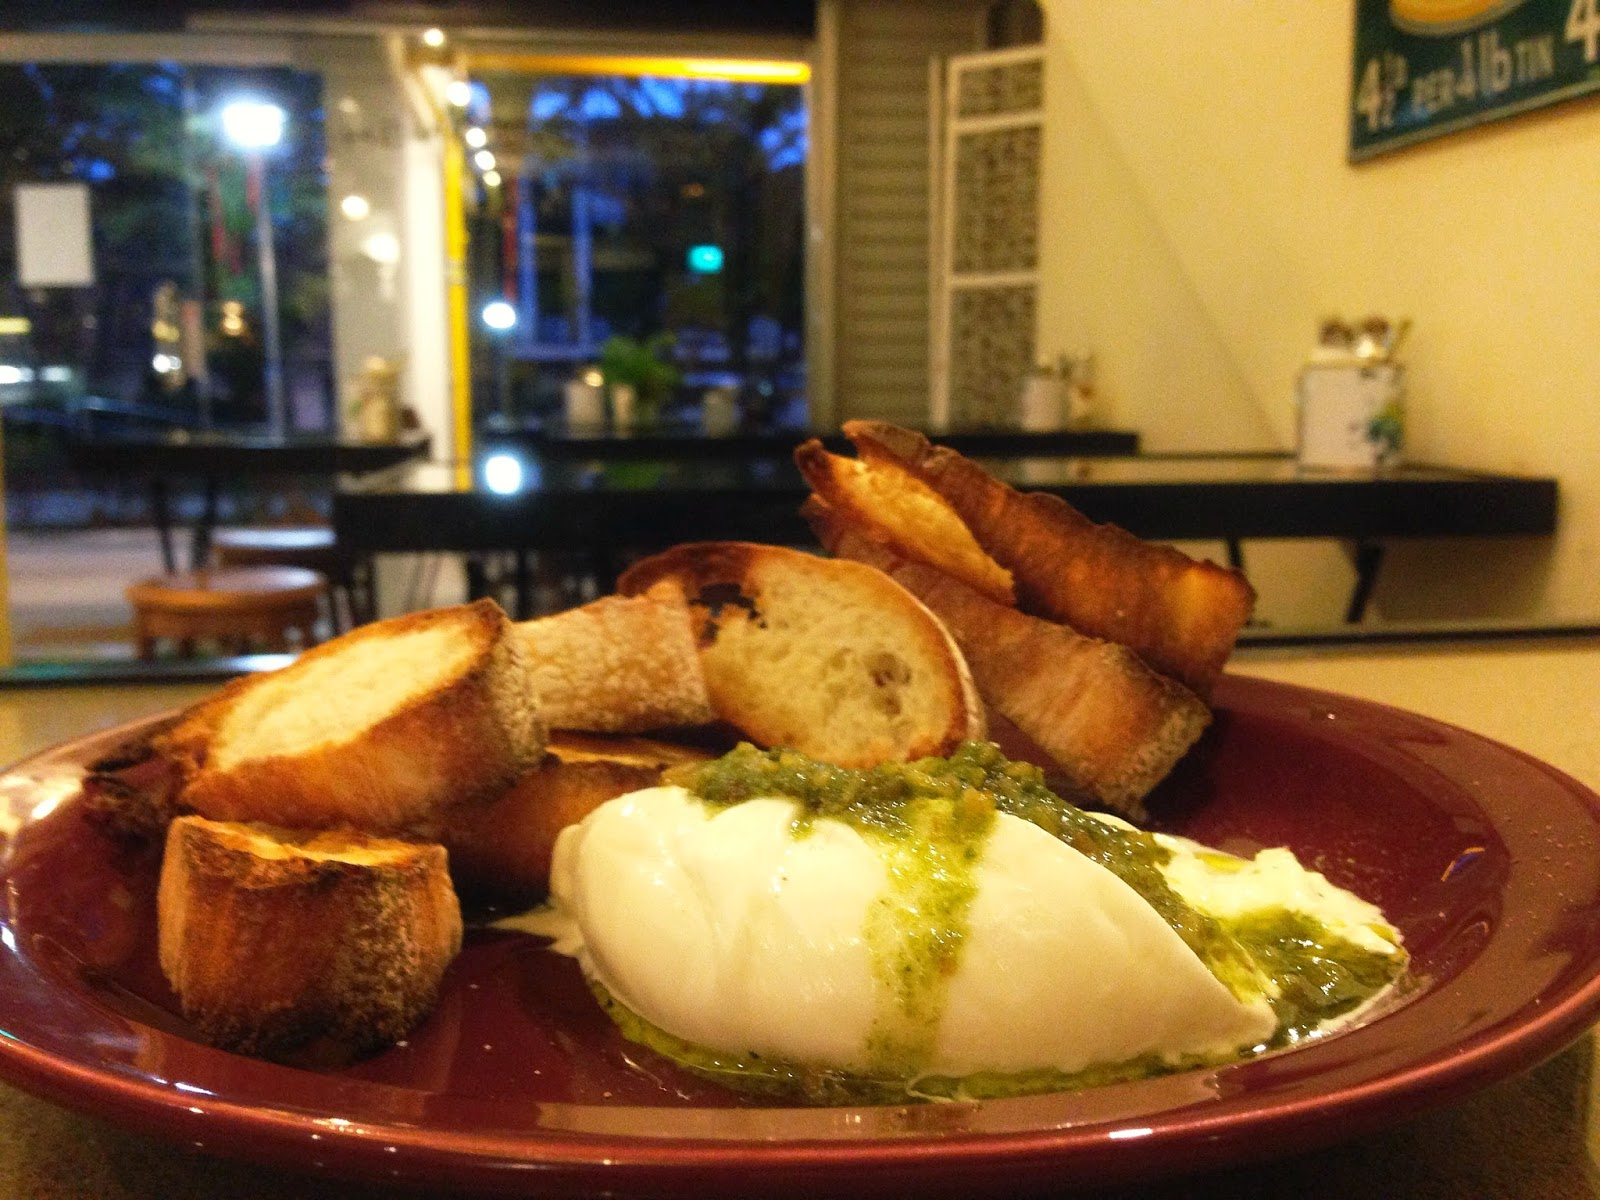 Burrata & Homemade Walnut Pesto